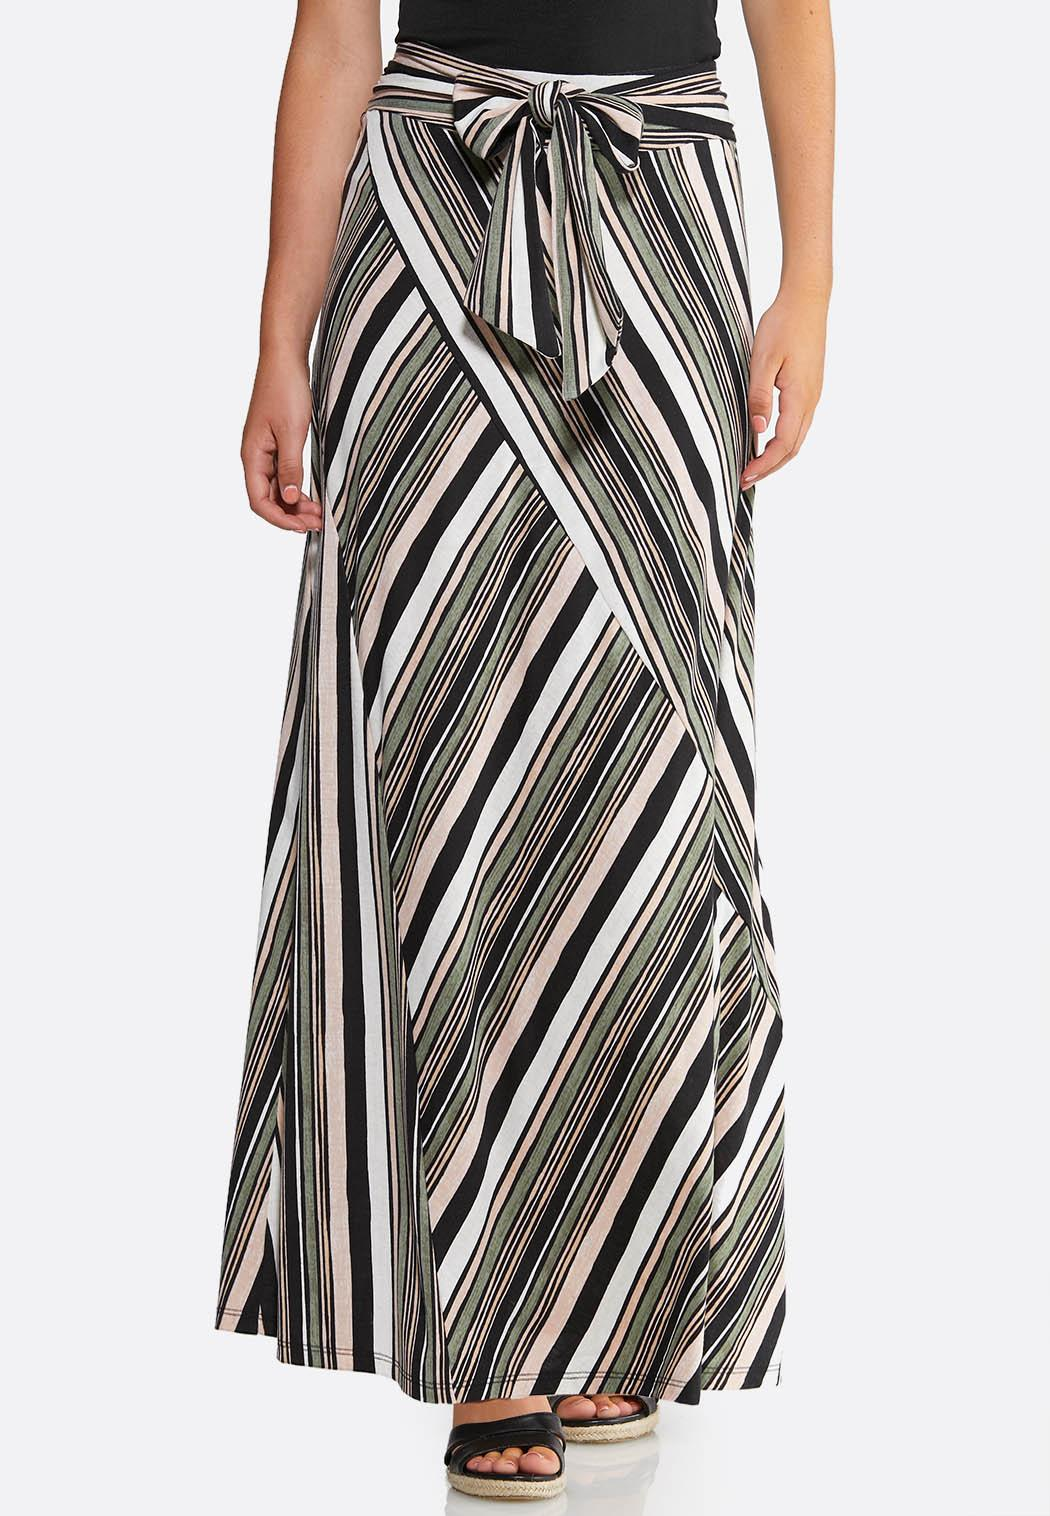 6aaf86e9e7 Plus Size Striped Seamed Maxi Skirt Maxi Cato Fashions